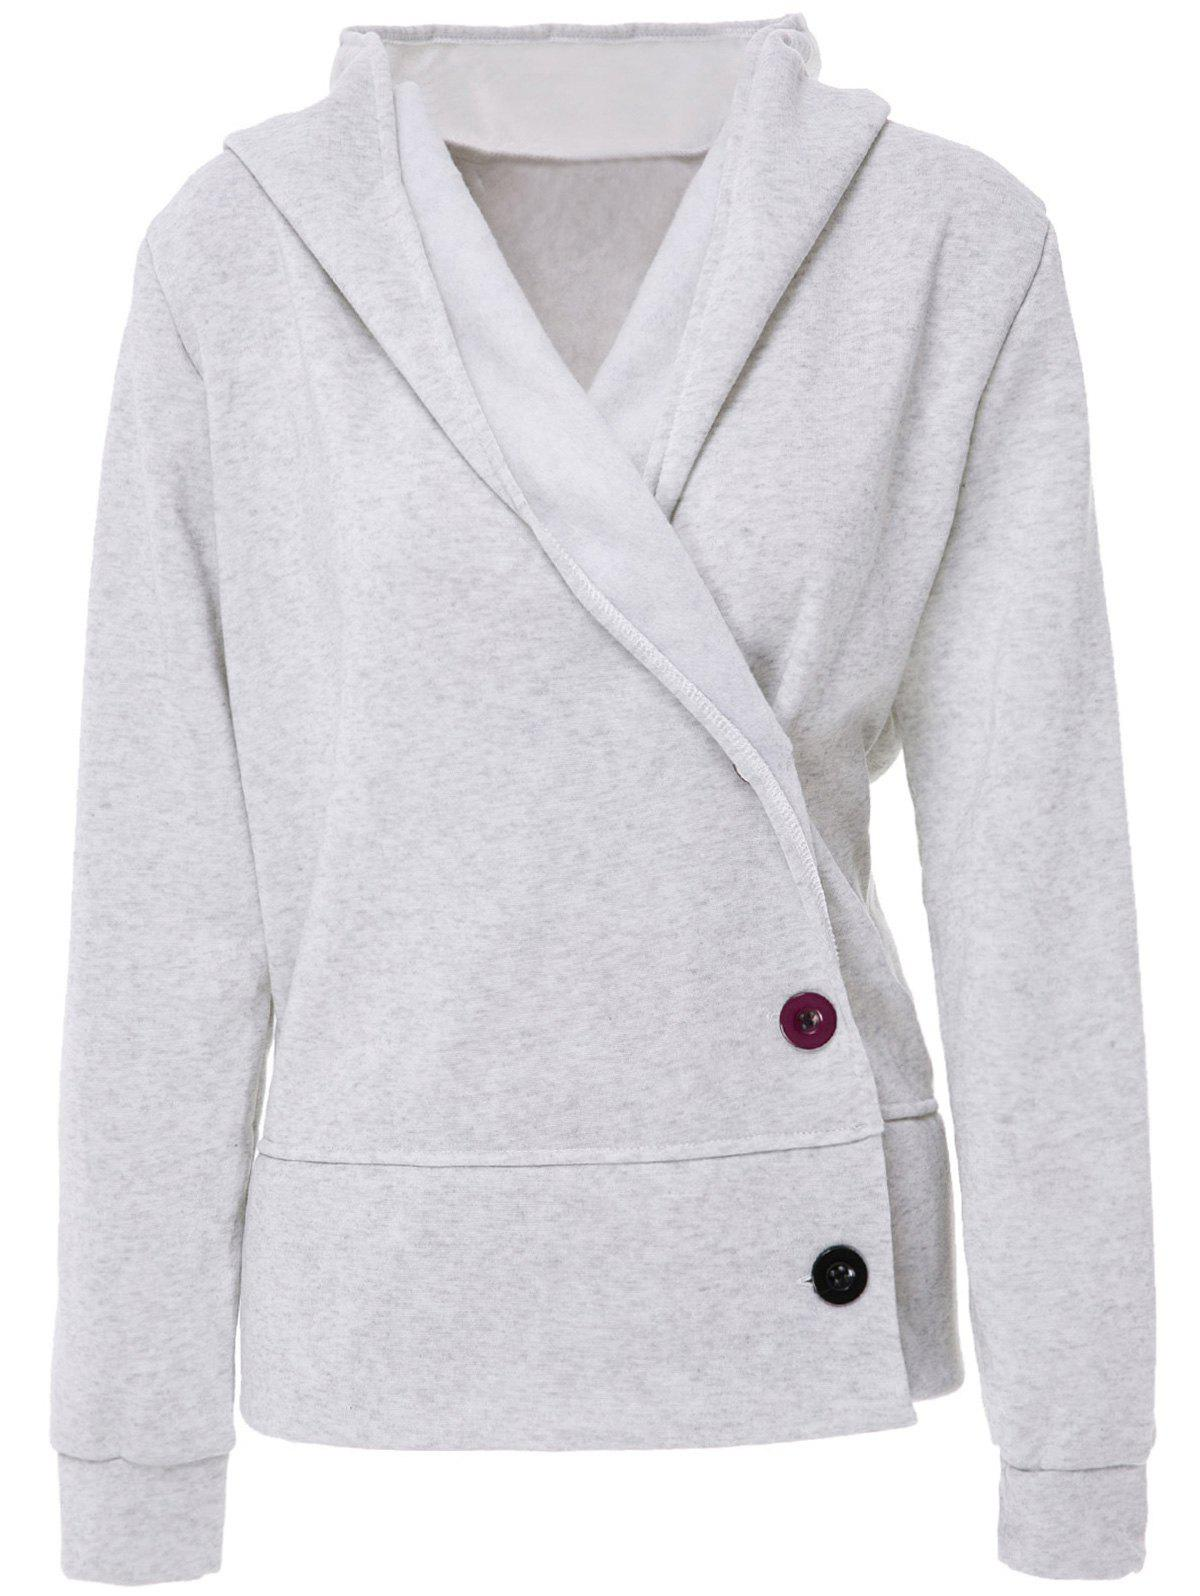 Button Up Hooded Casual Hoodie - LIGHT GRAY L